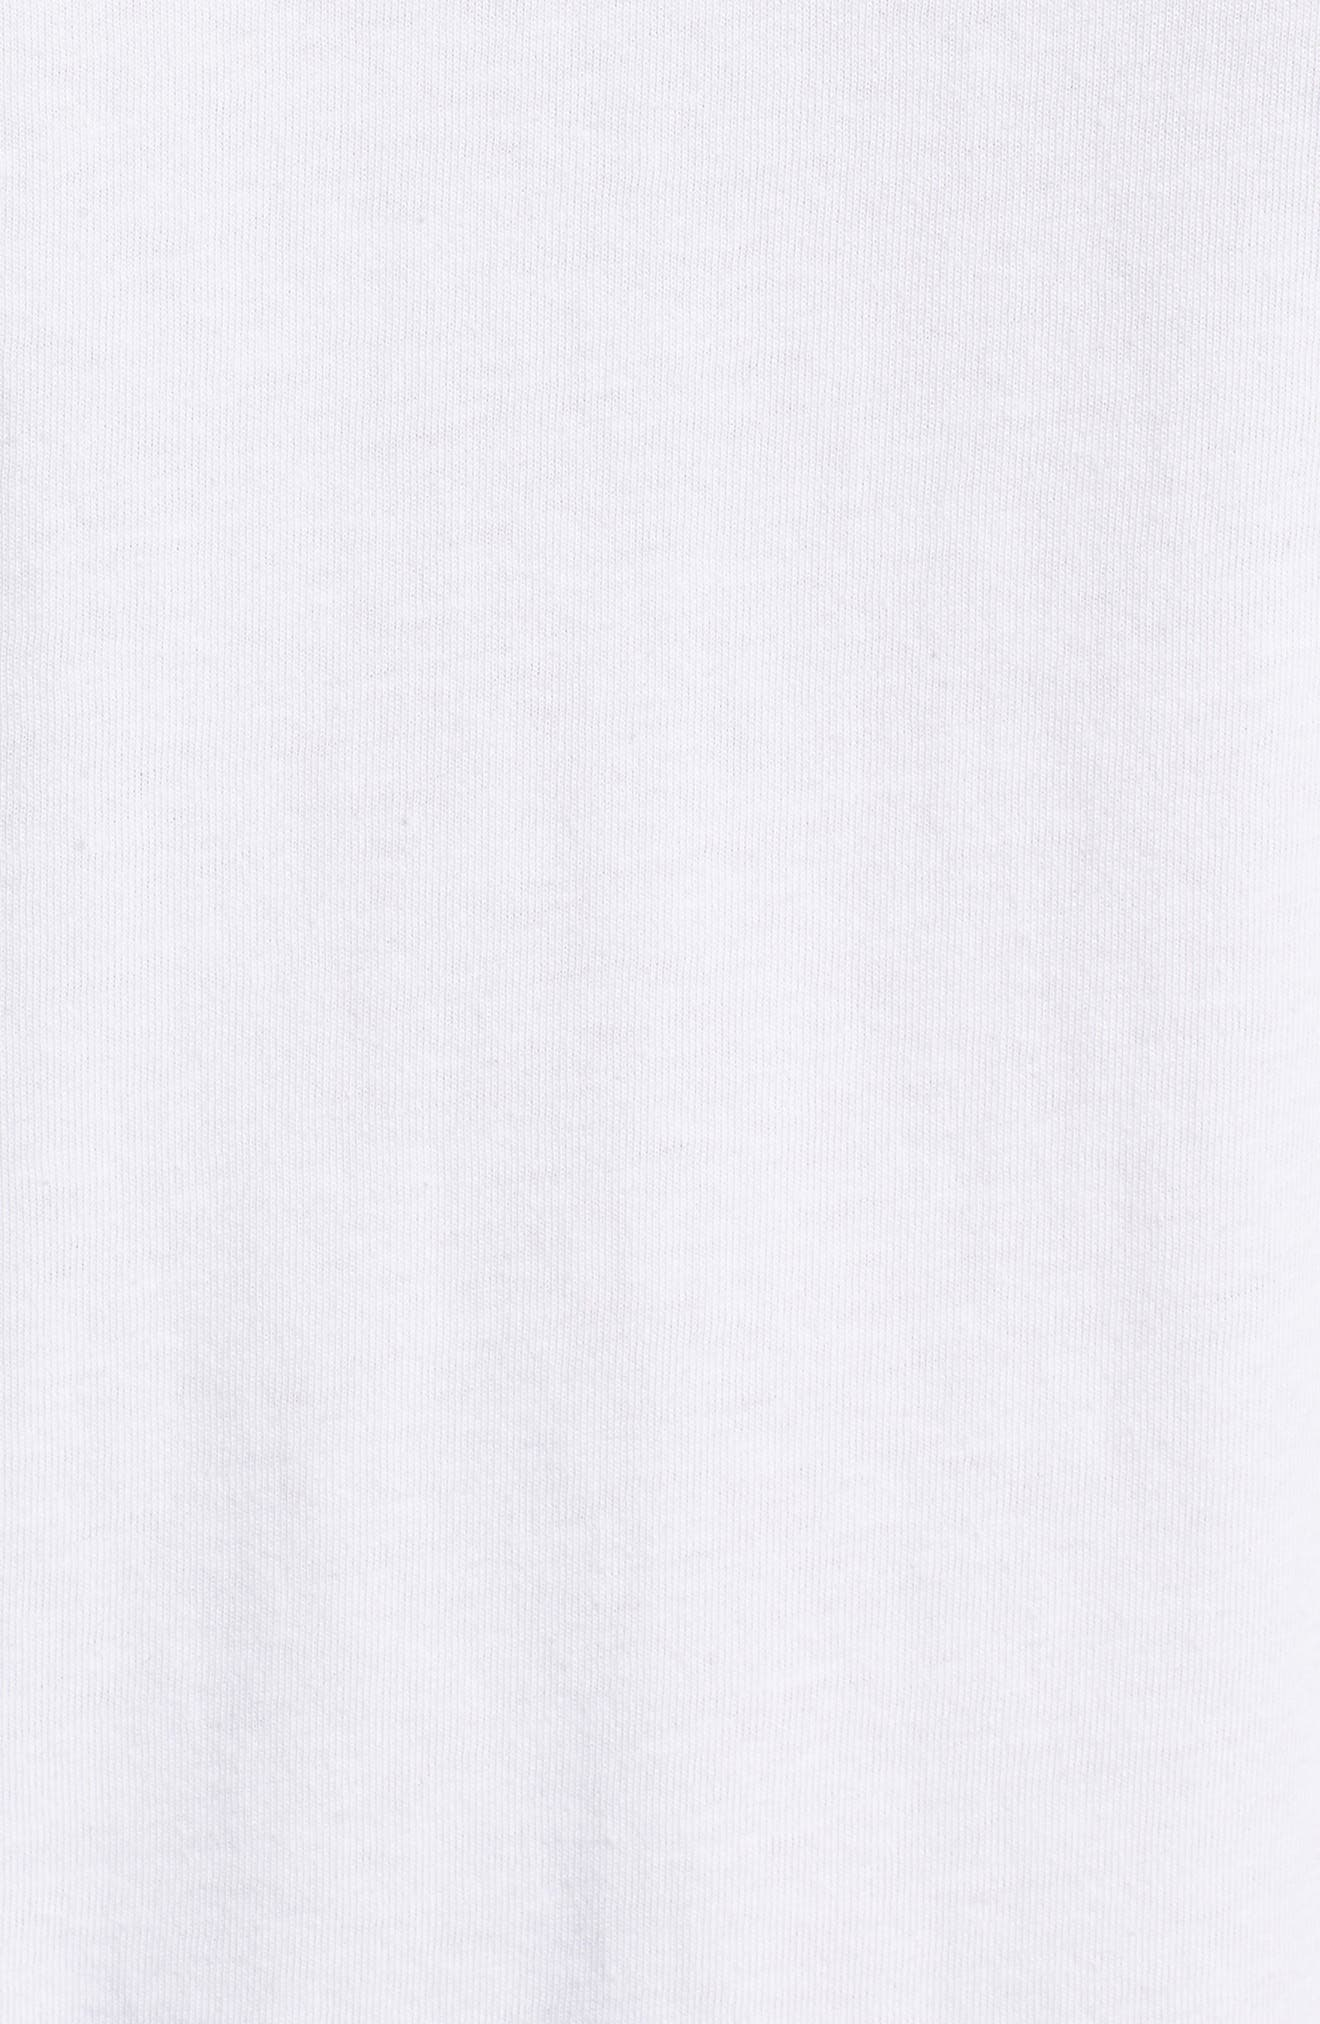 Taste the Paradise Graphic T-Shirt,                             Alternate thumbnail 5, color,                             White